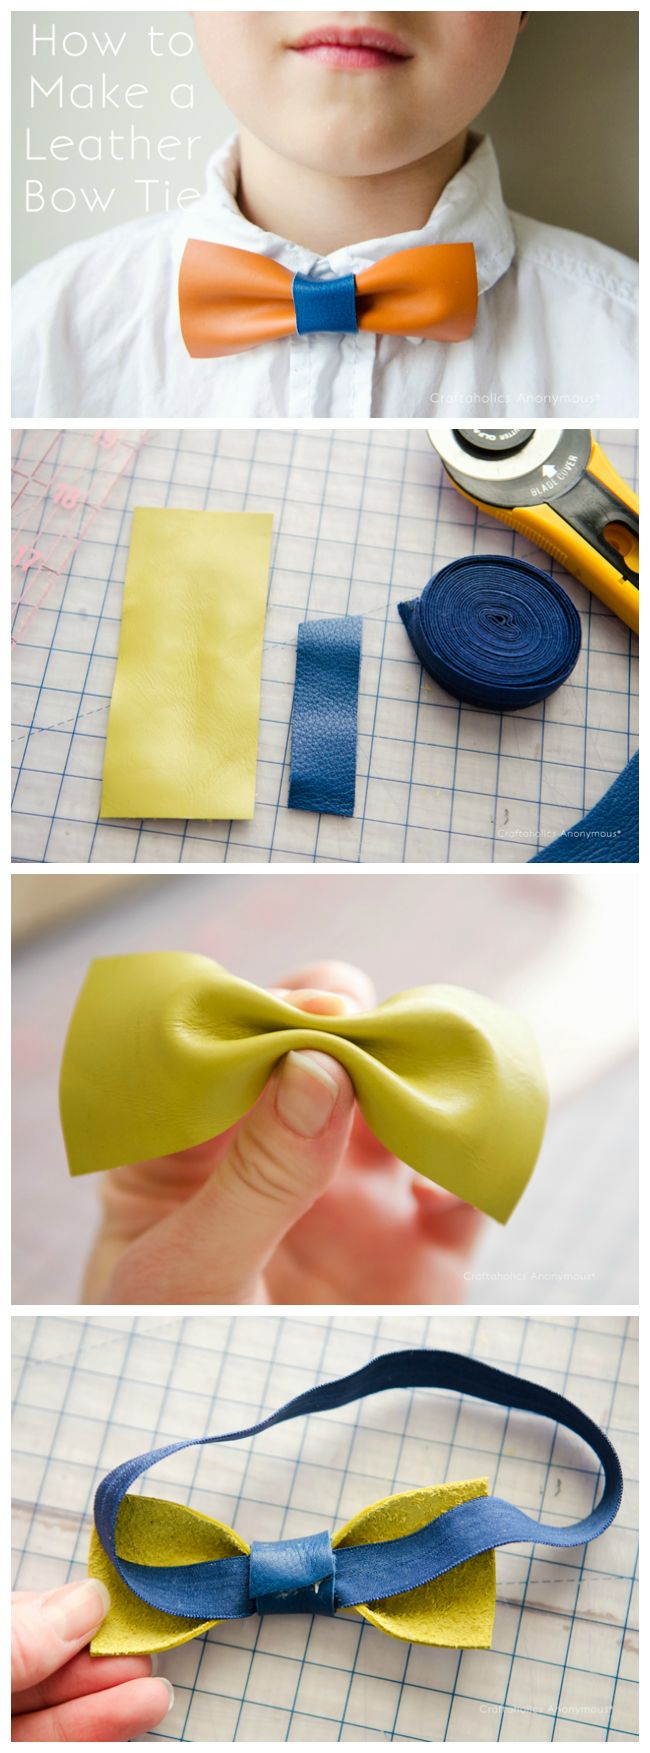 how to make leather bow tie. Click here: http://www.craftaholicsanonymous.net/make-leather-bow-ties-tutorial